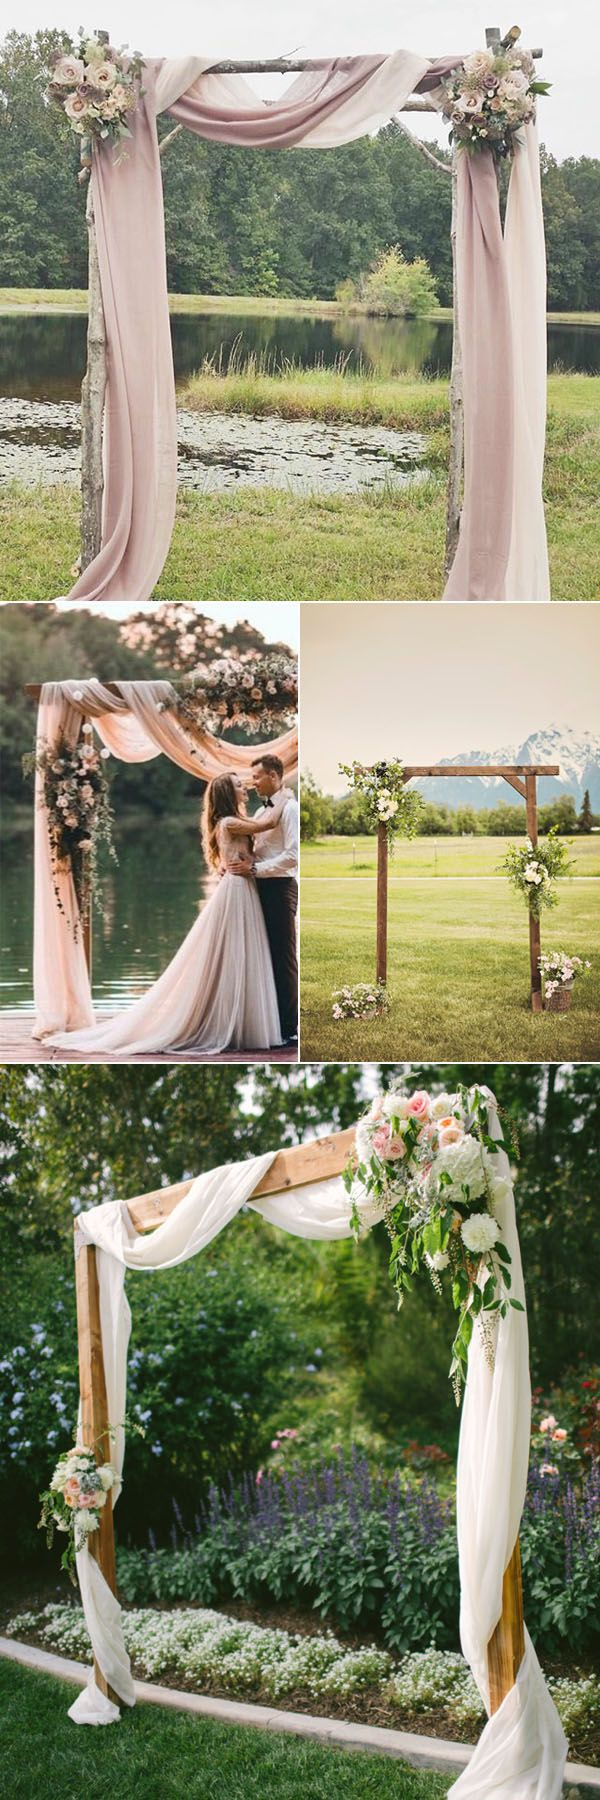 25+ Best Ideas About Outdoor Weddings On Pinterest